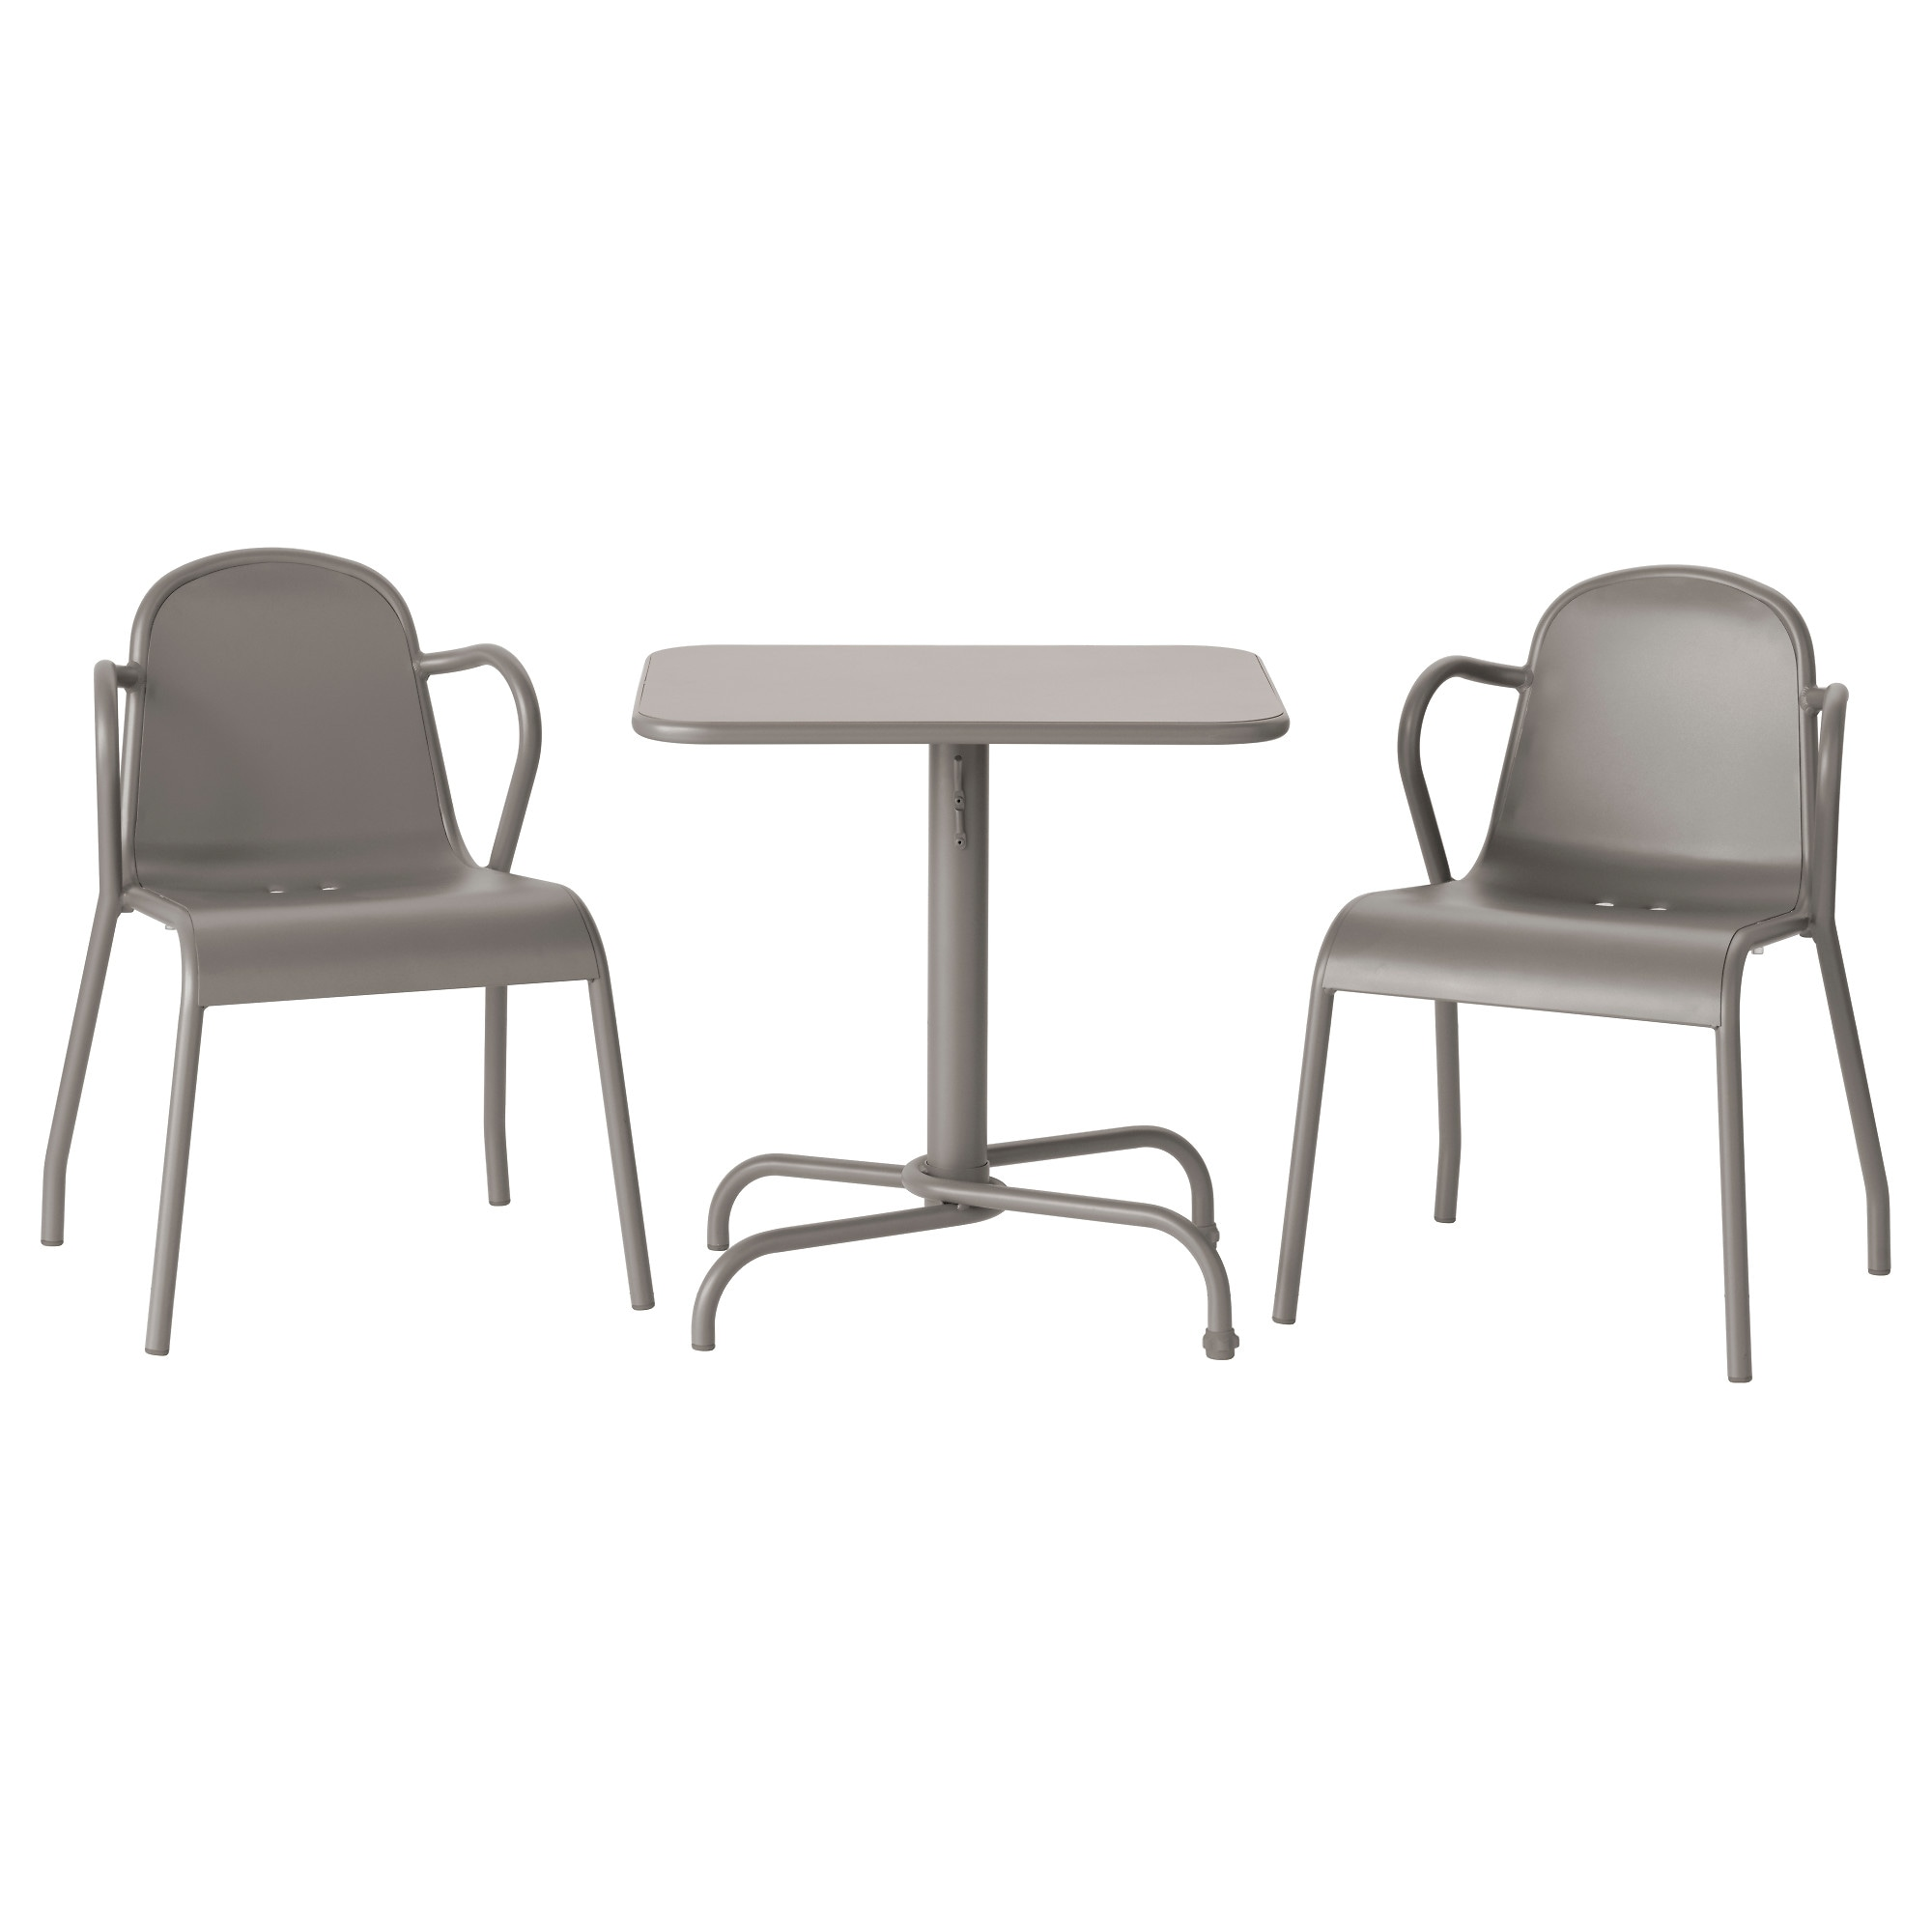 table 2 chairs. table 2 chairs